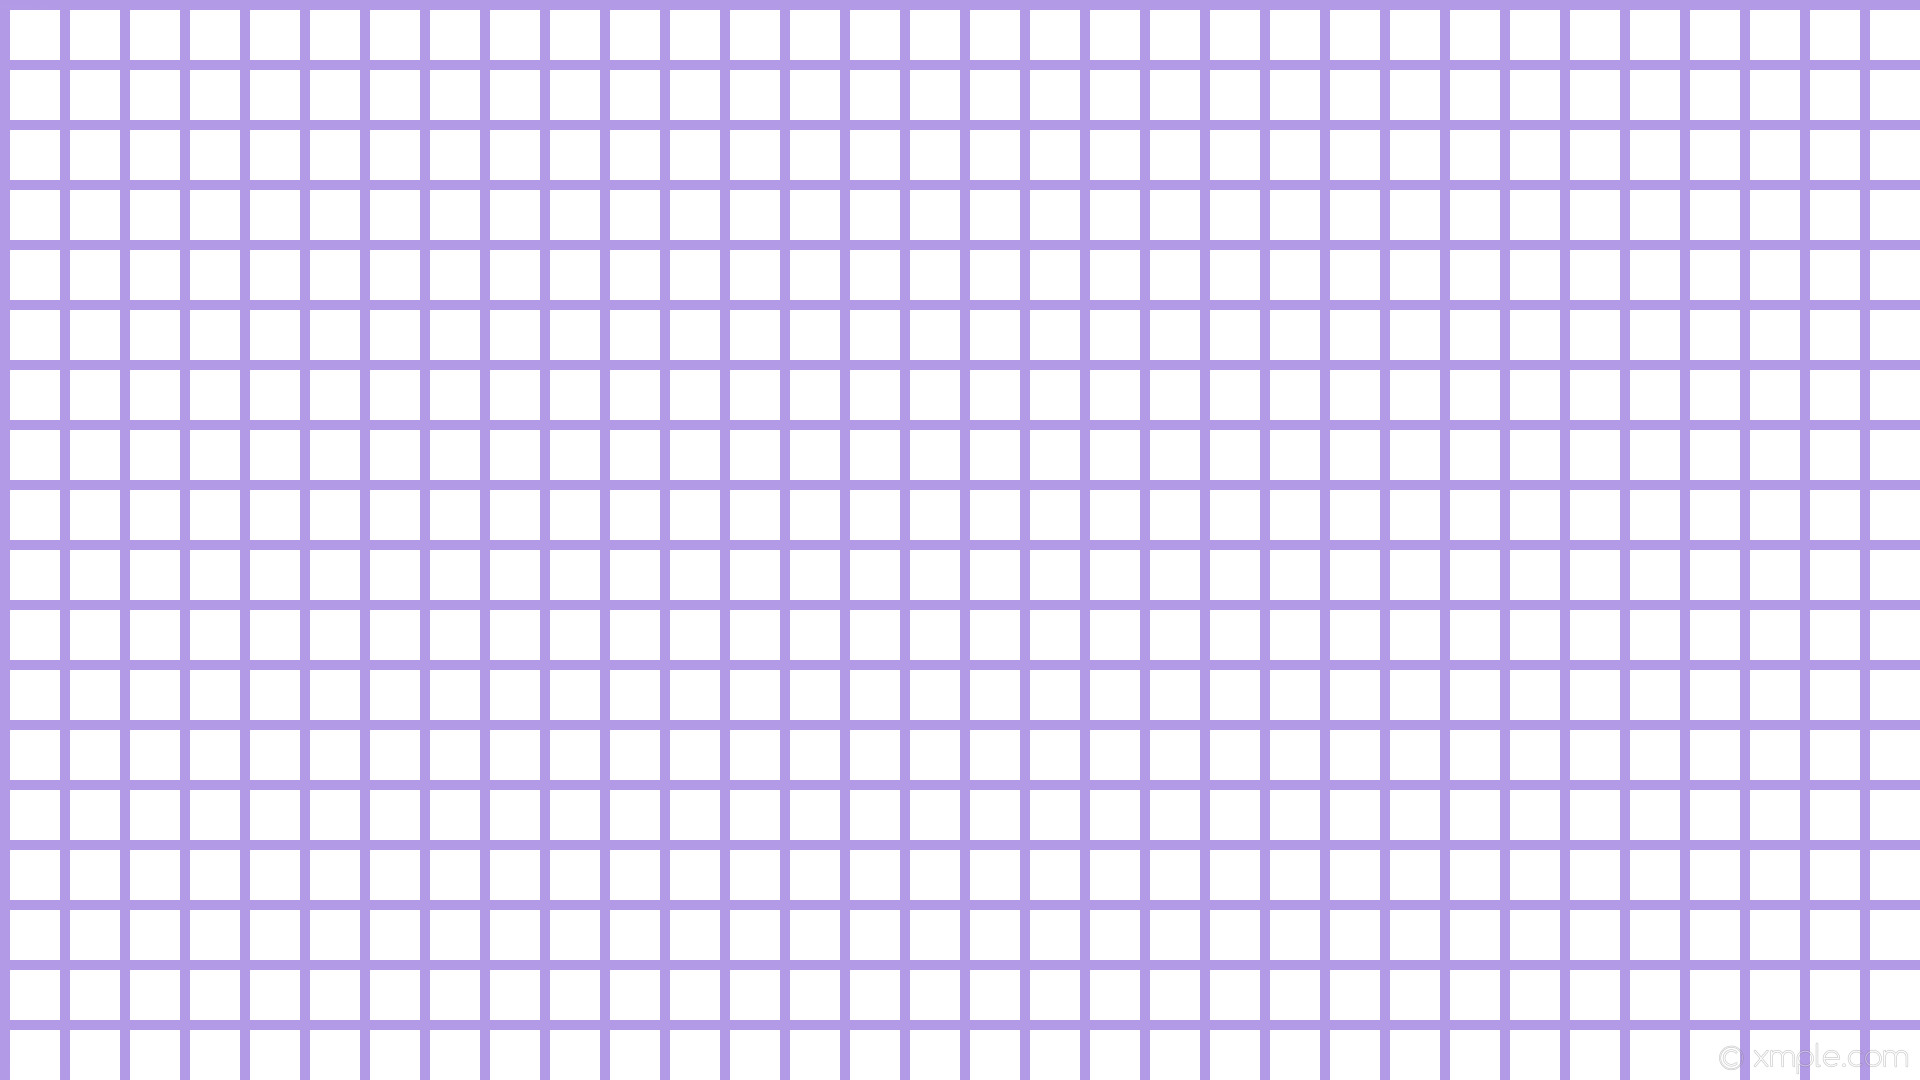 1920x1080 wallpaper graph paper purple white grid medium purple #ffffff #9370db 0°  10px 60px